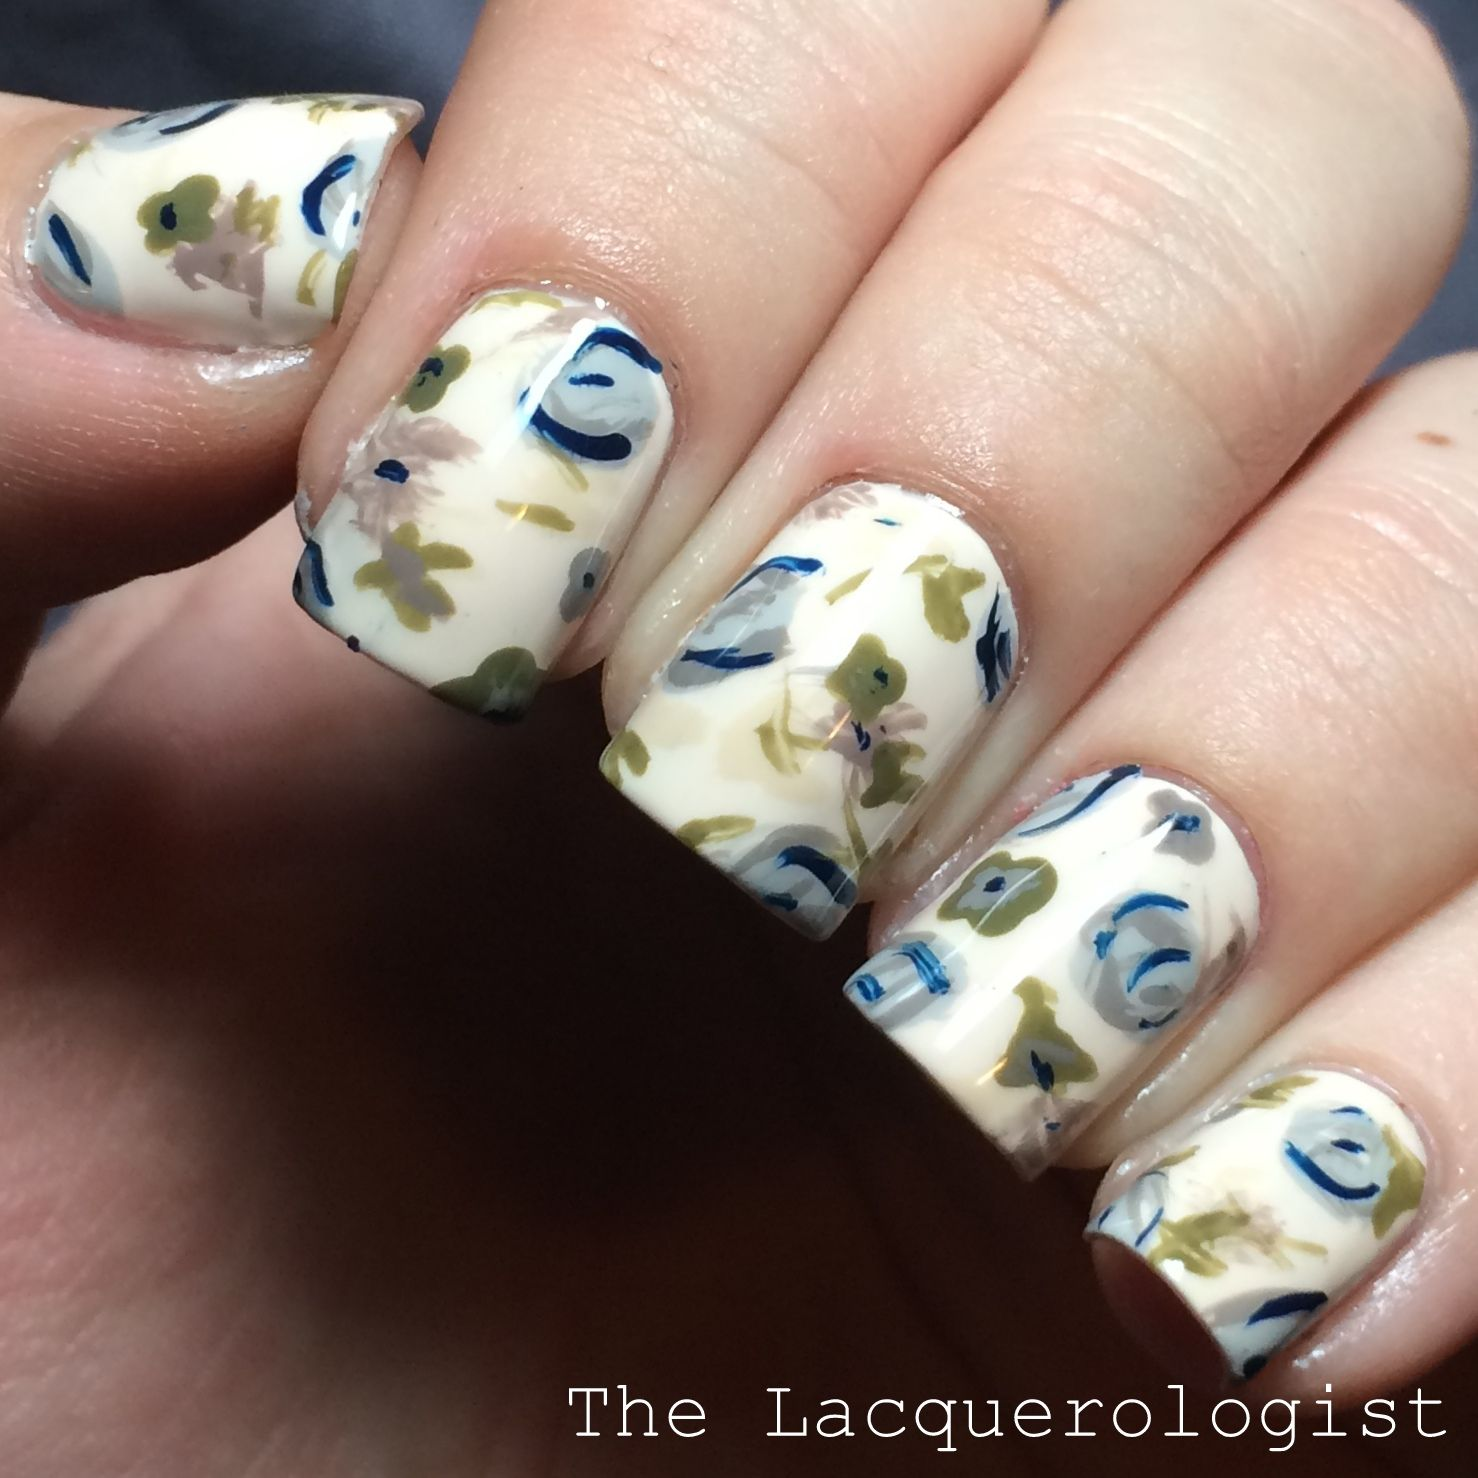 The Lacquerologist: When Your Nails Match Your Shirt...